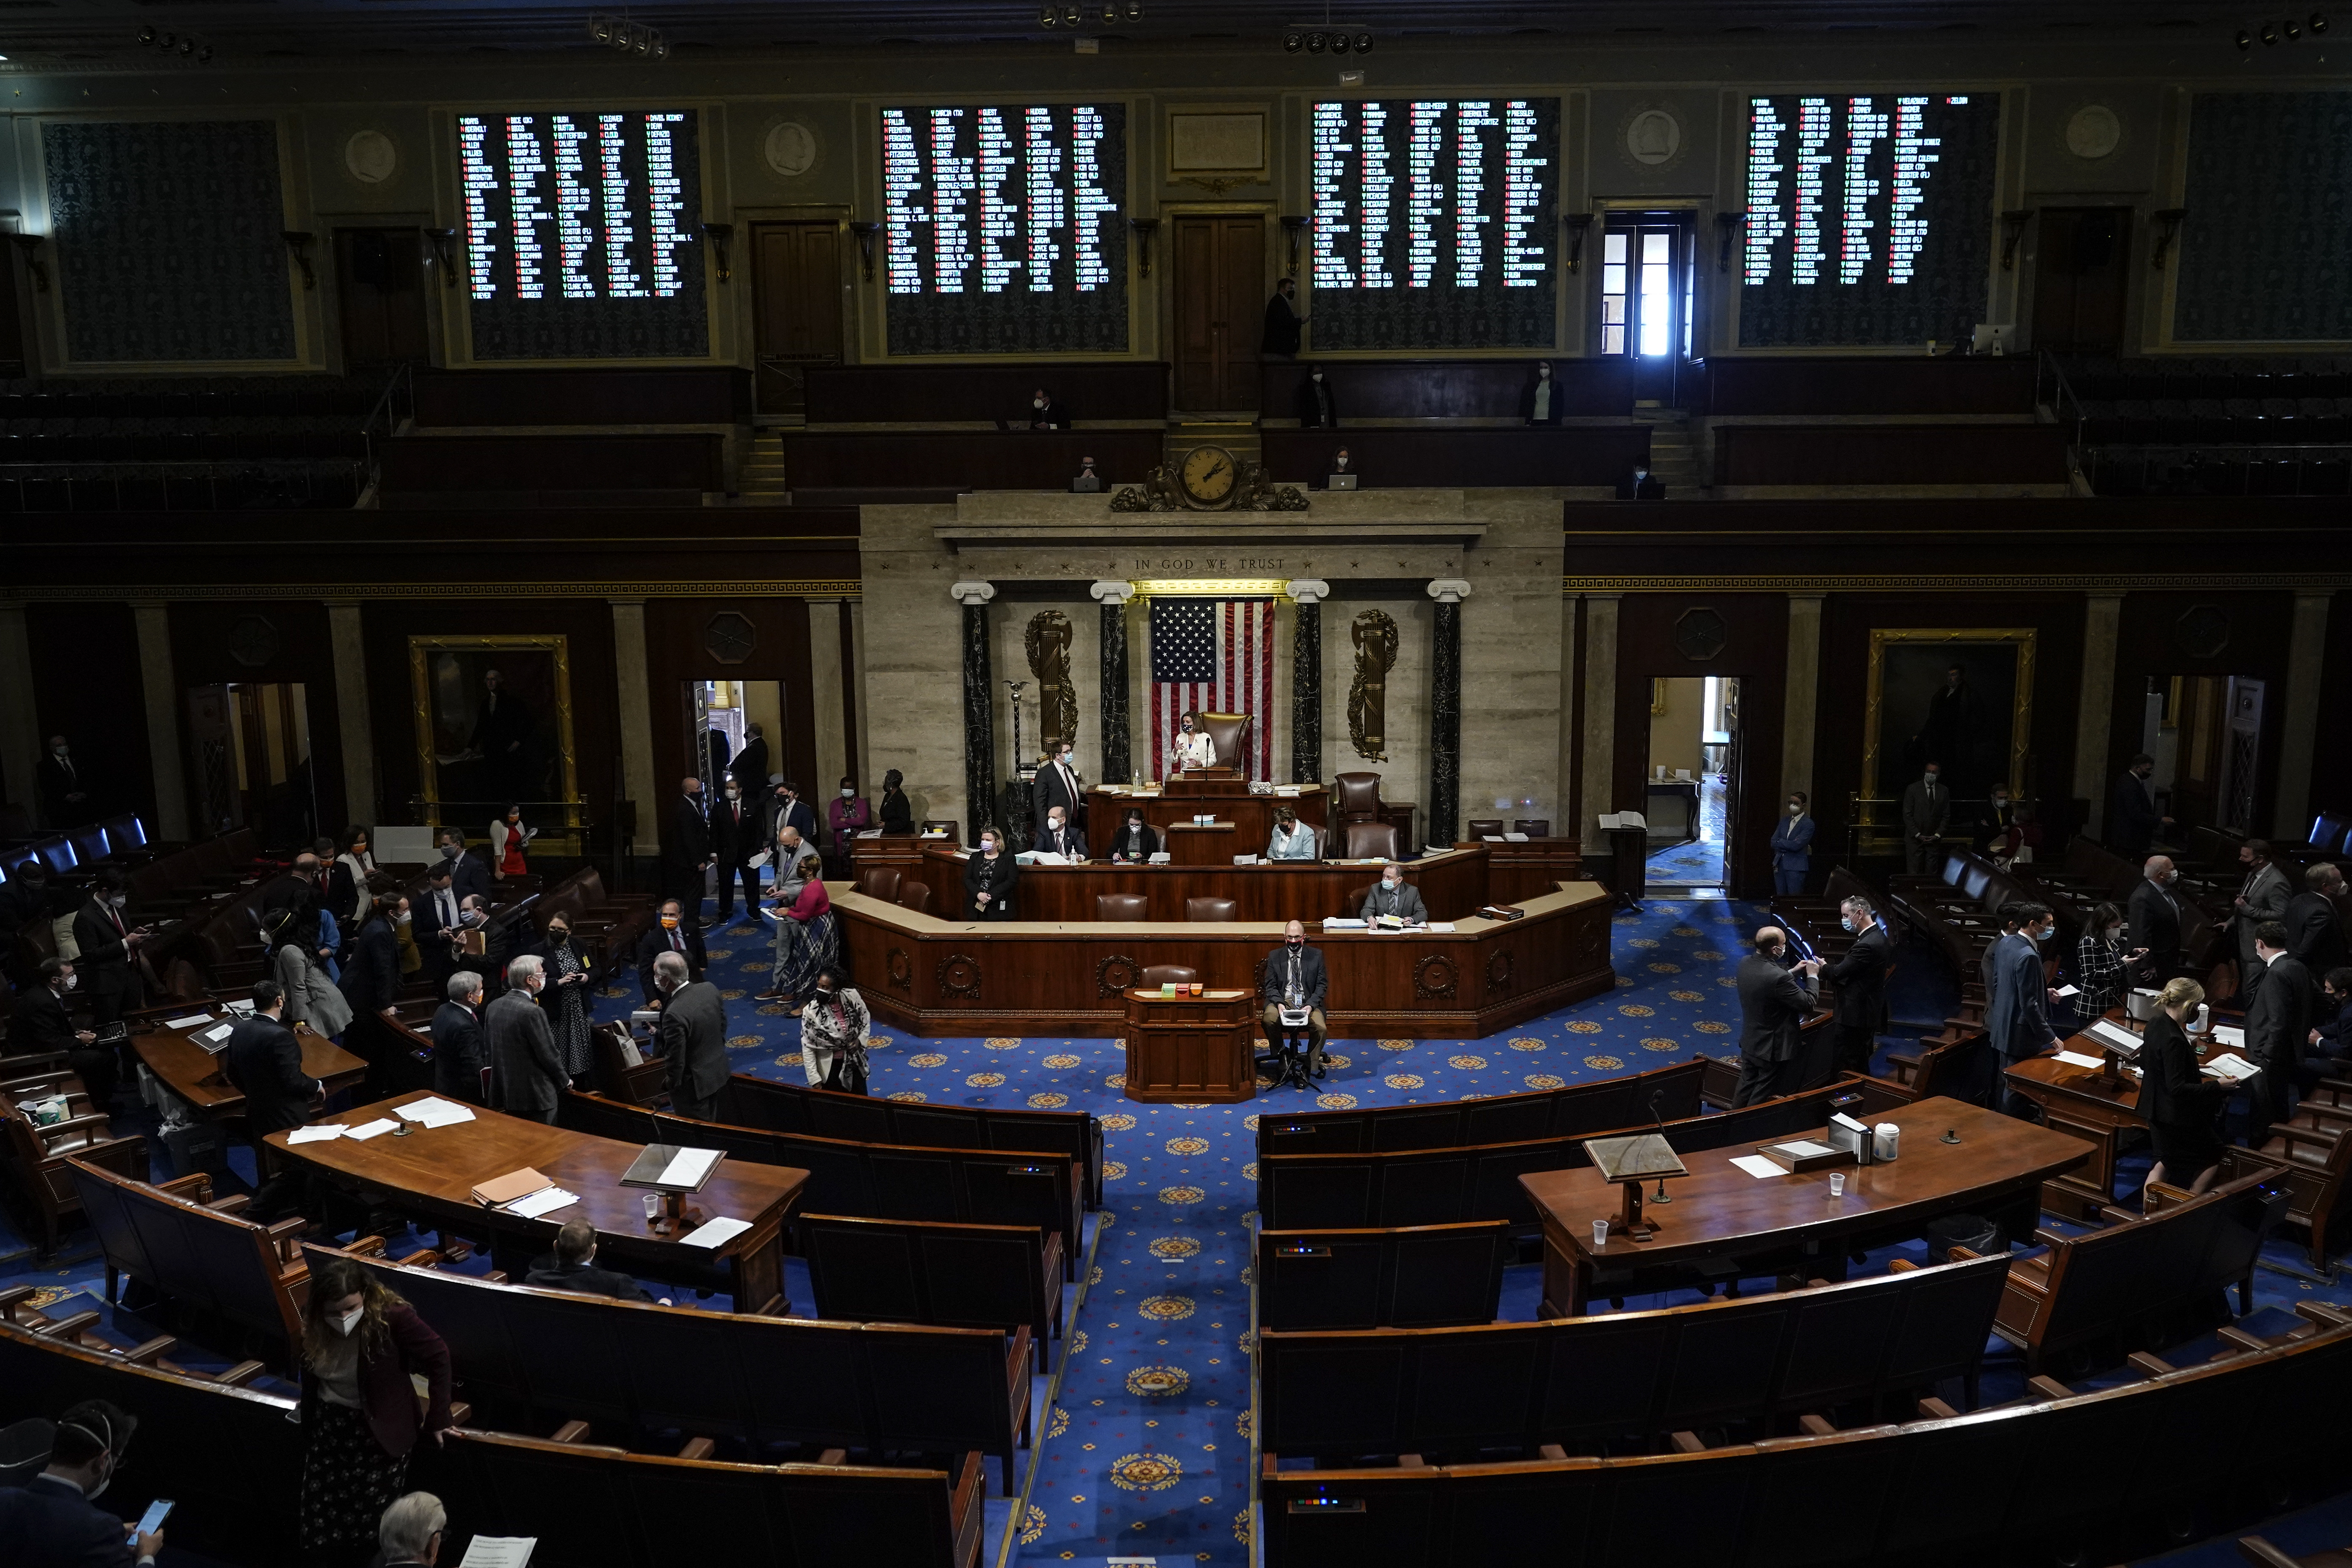 WASHINGTON, DC - MARCH 10: Speaker of the House Nancy Pelosi (D-CA) presides over voting on coronavirus relief package H.R. 1319 in the House Chamber of the U.S. Capitol on March 10, 2021 in Washington, DC. In a final vote, the House passed U.S. President Joe Biden's revised $1.9 trillion COVID-19 relief bill, named the American Rescue Plan, in the administration's first major legislative achievement.